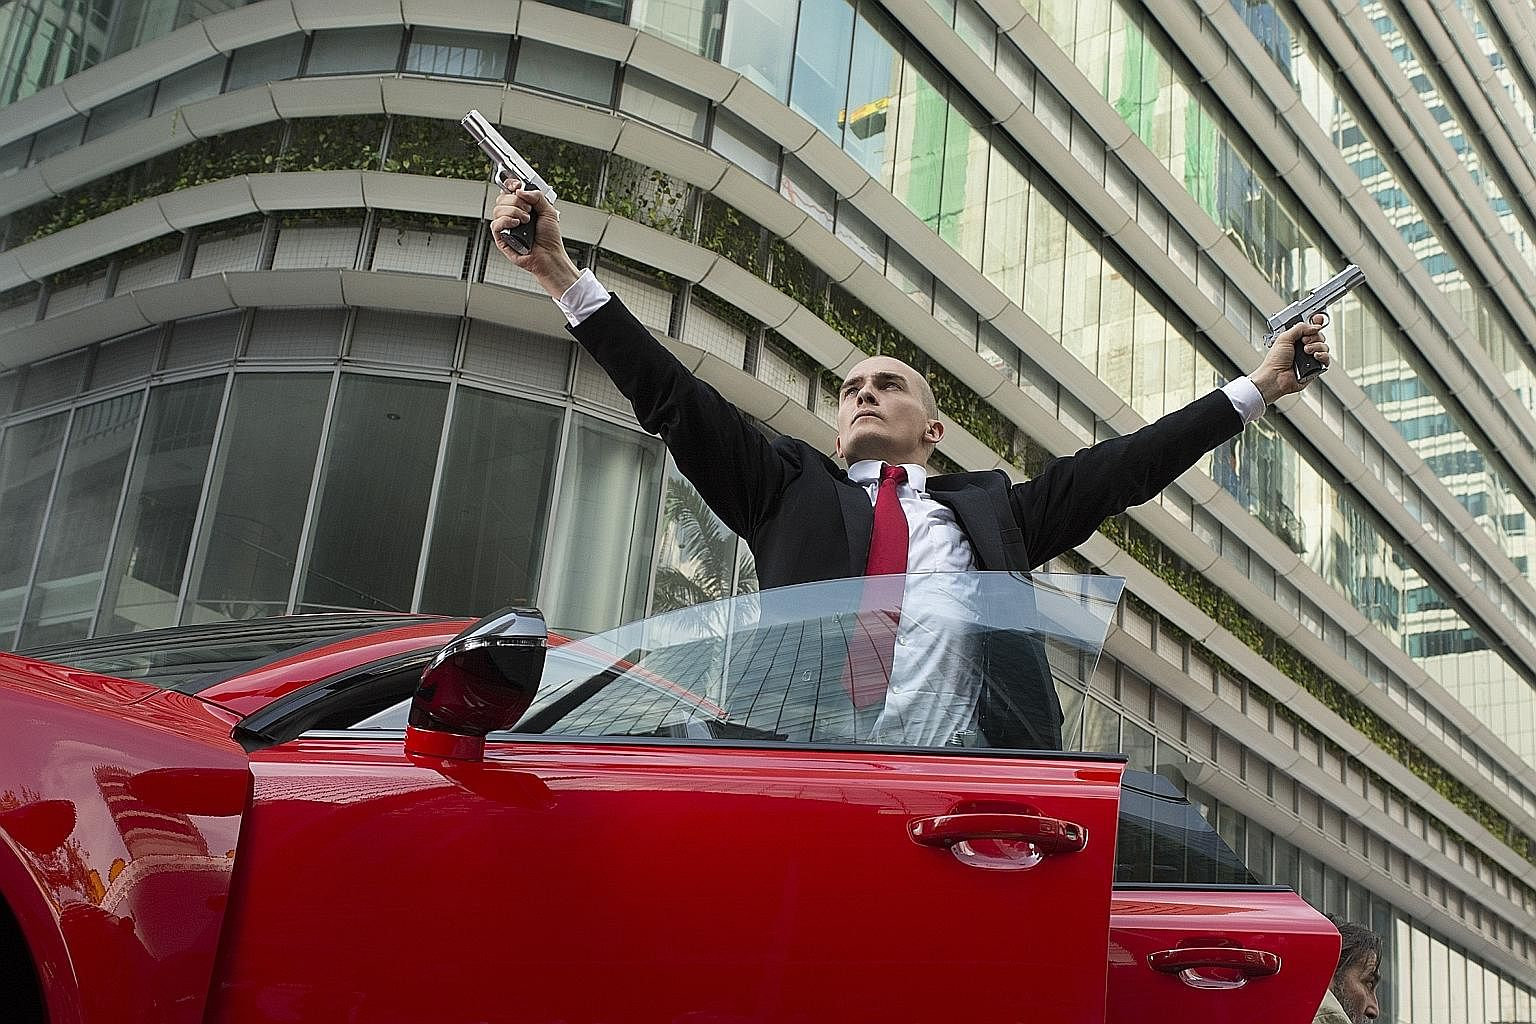 Agent 47, starring Rupert Friend (above), was shot in Singapore's Marina Bay.